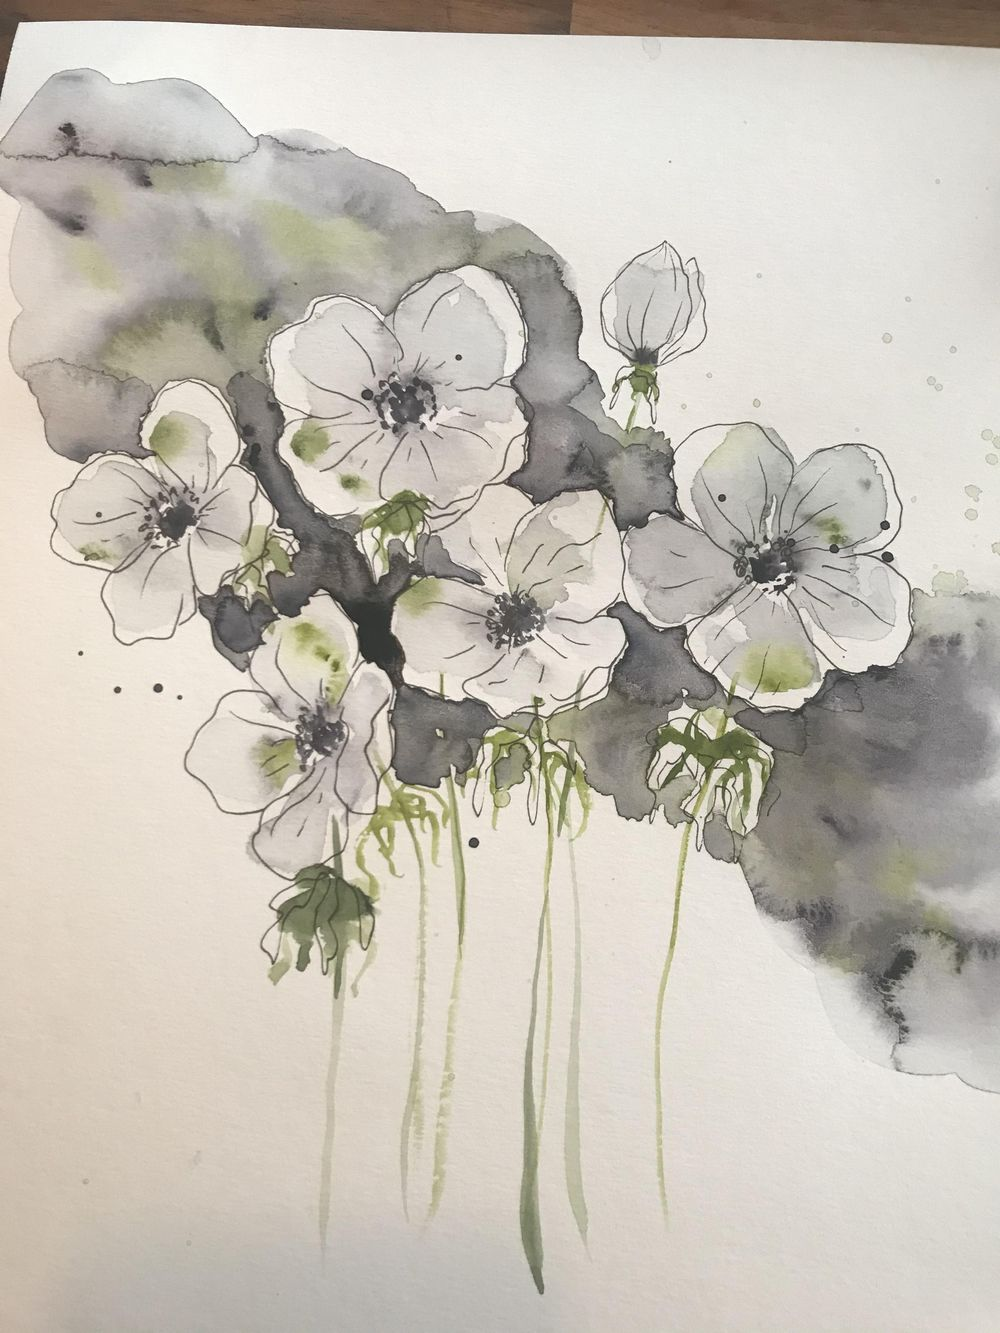 Anemones - image 1 - student project